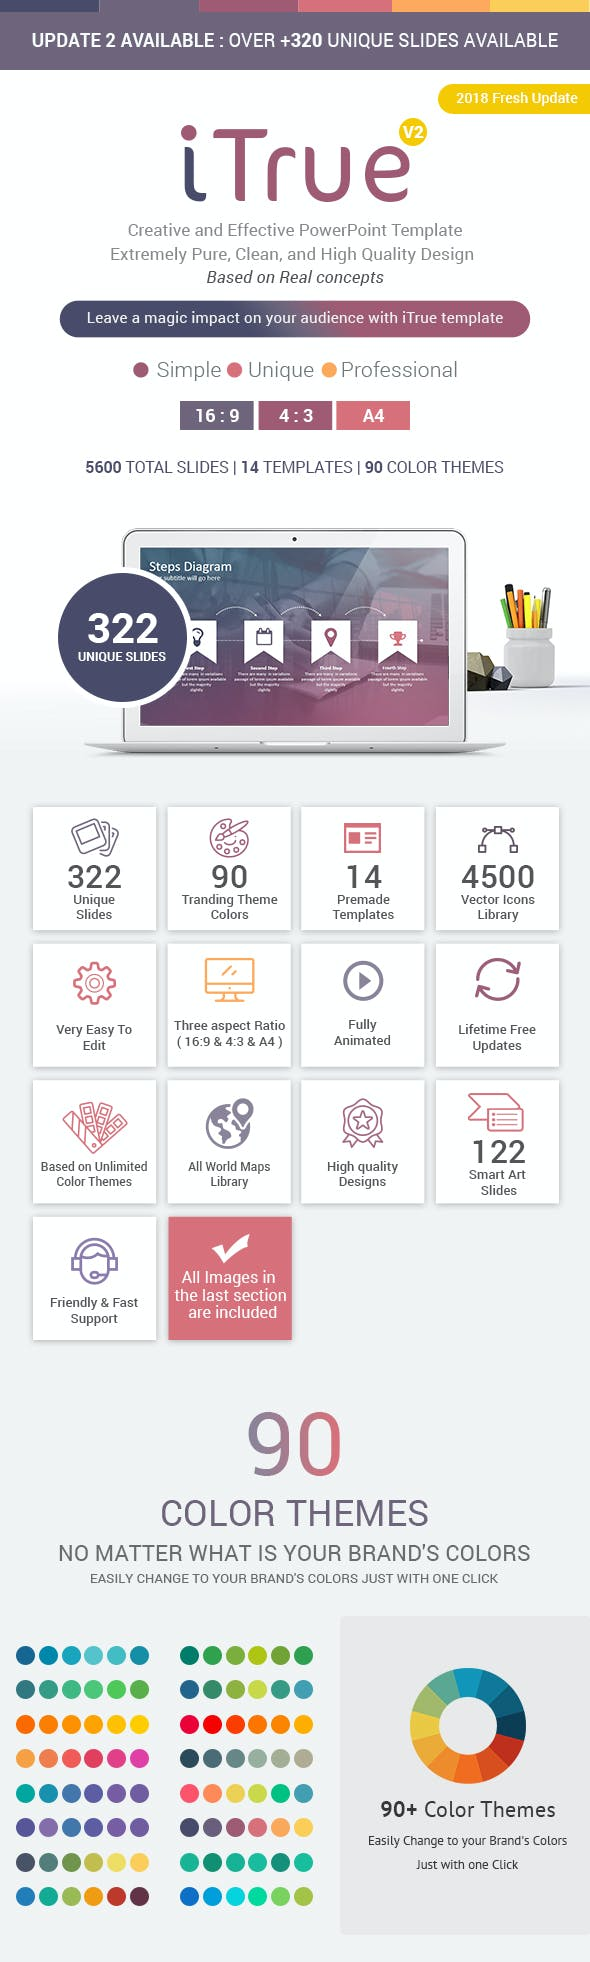 itrue premium powerpoint presentation template by rojdark graphicriver